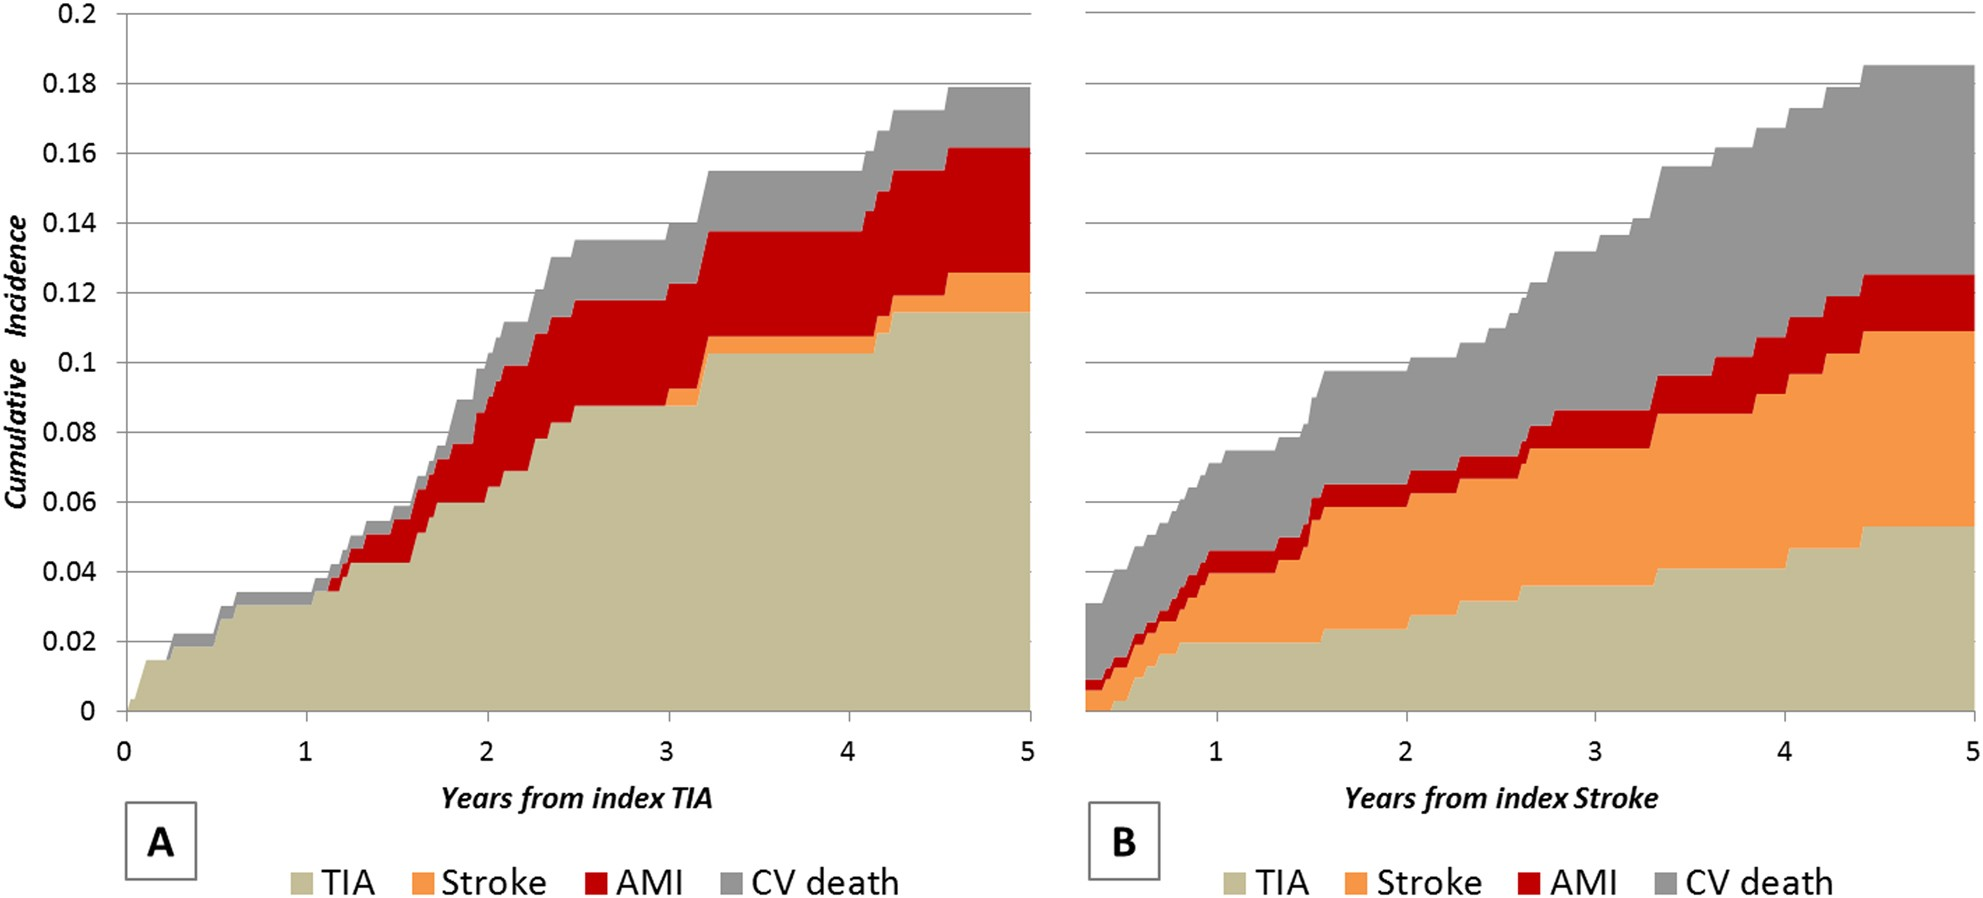 Benefit-risk profile of cytoreductive drugs along with